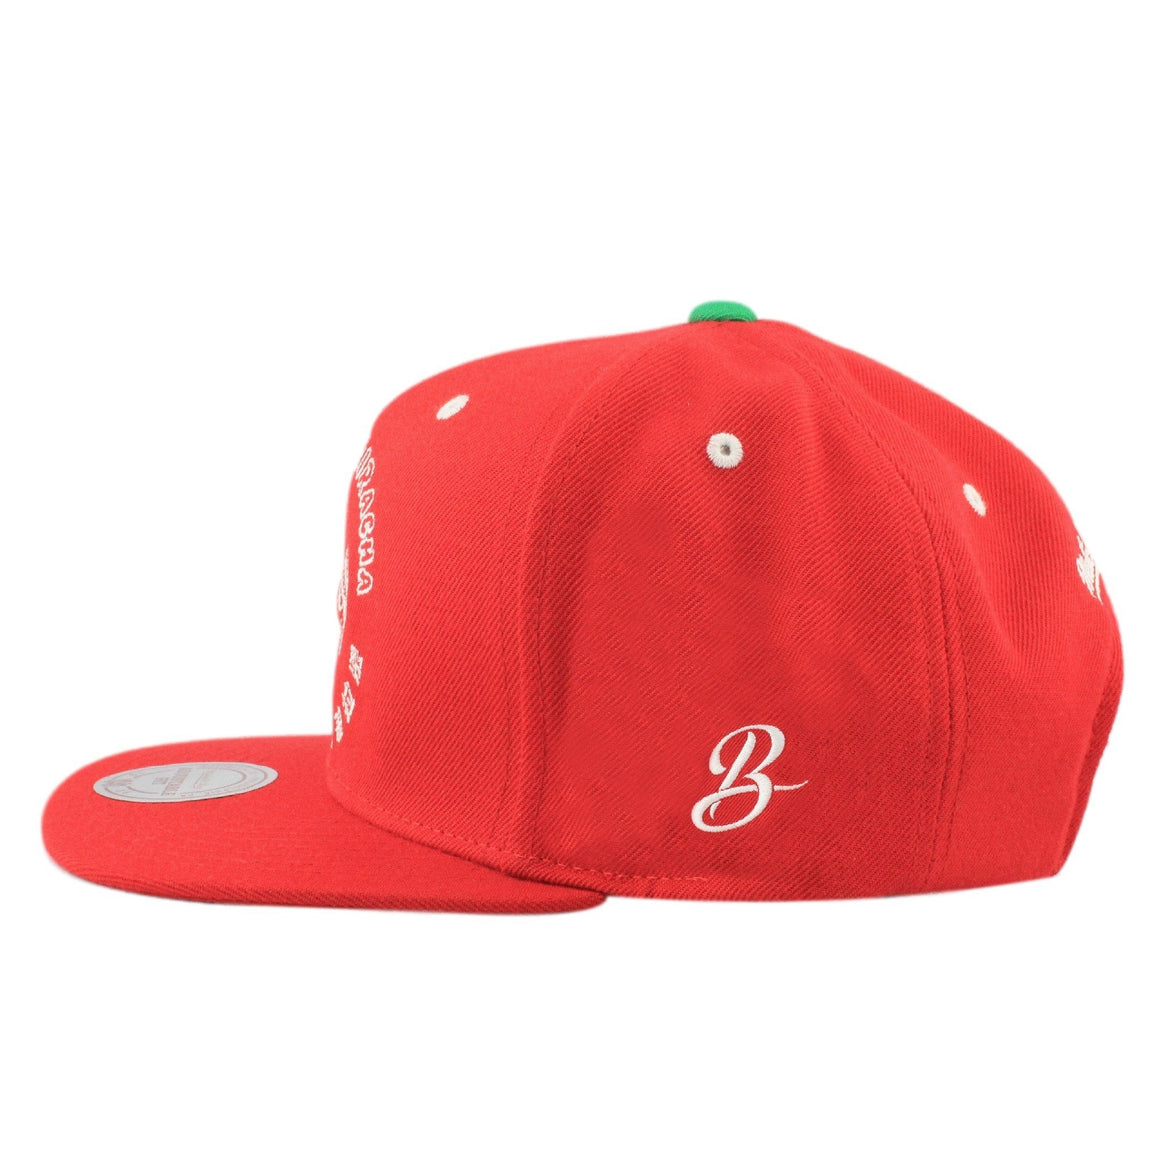 Apparel - Sriracha Hat